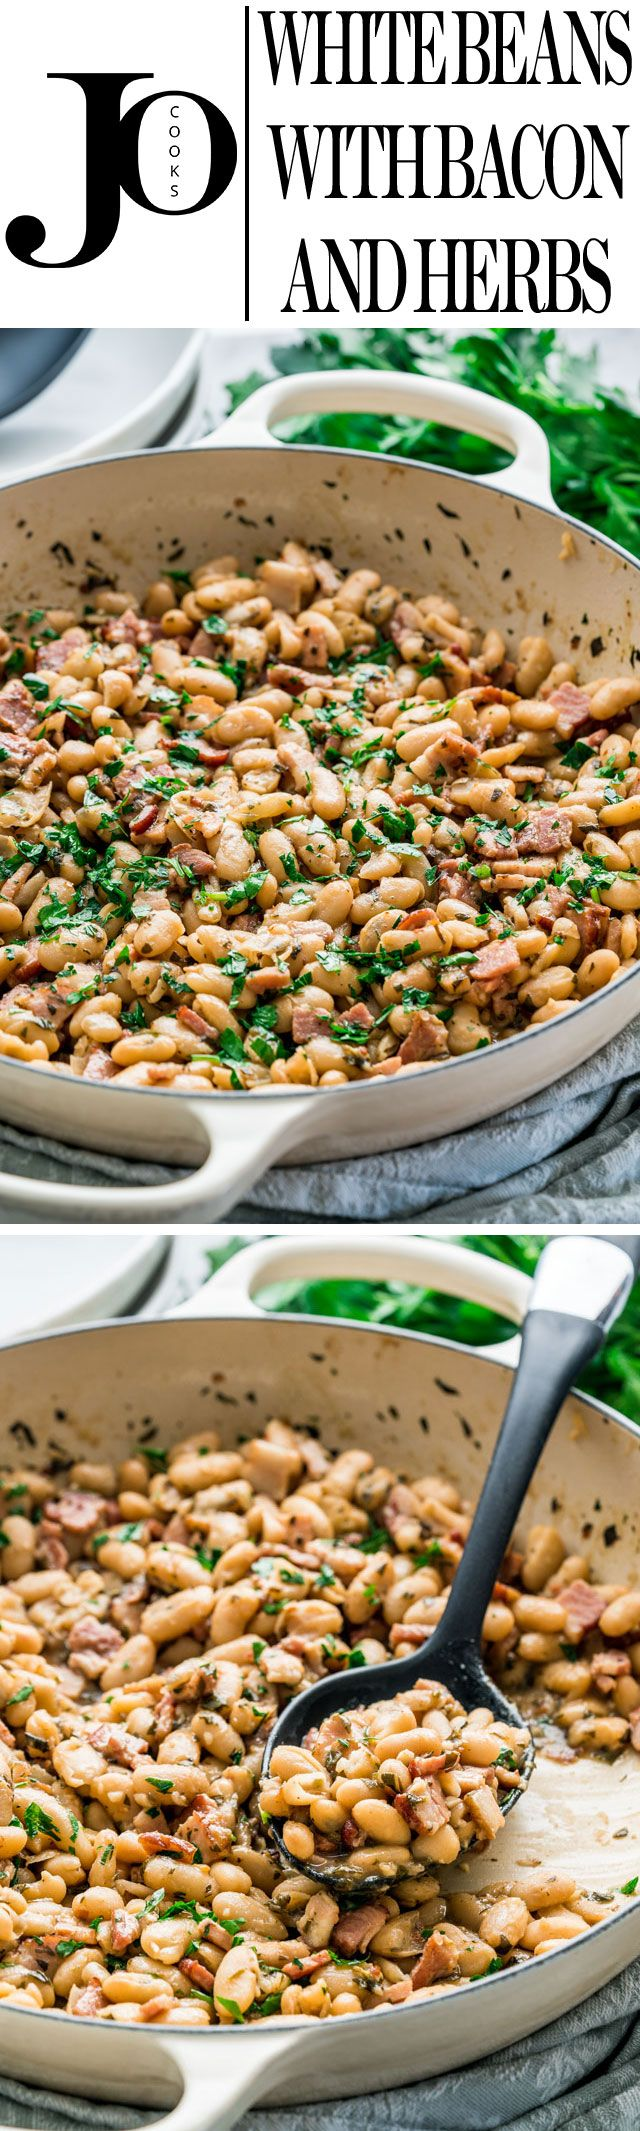 These white beans with bacon and herbs are so simple to make, rich and savory, comforting, loaded with flavor and super delicious.